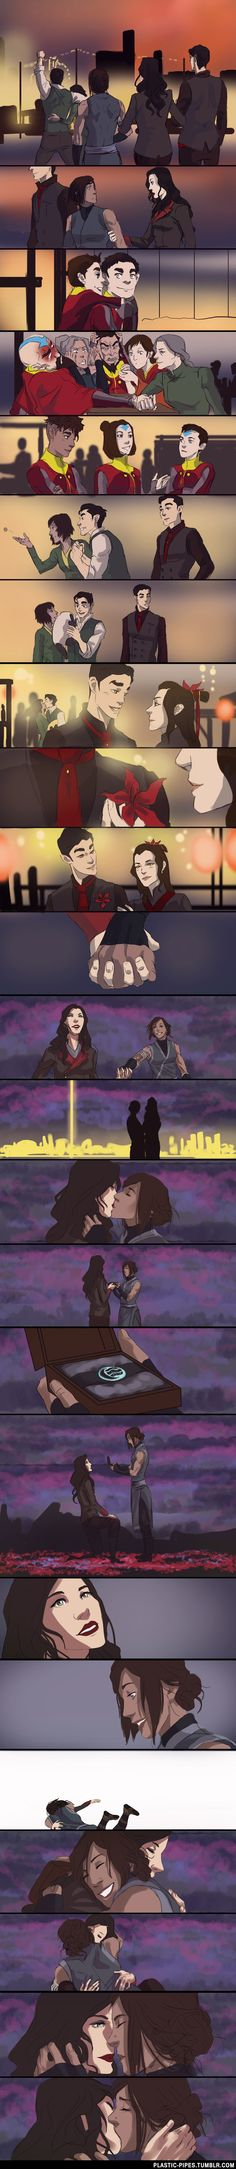 Korrasami Anniversary by plastic-pipes.deviantart.com on @DeviantArt